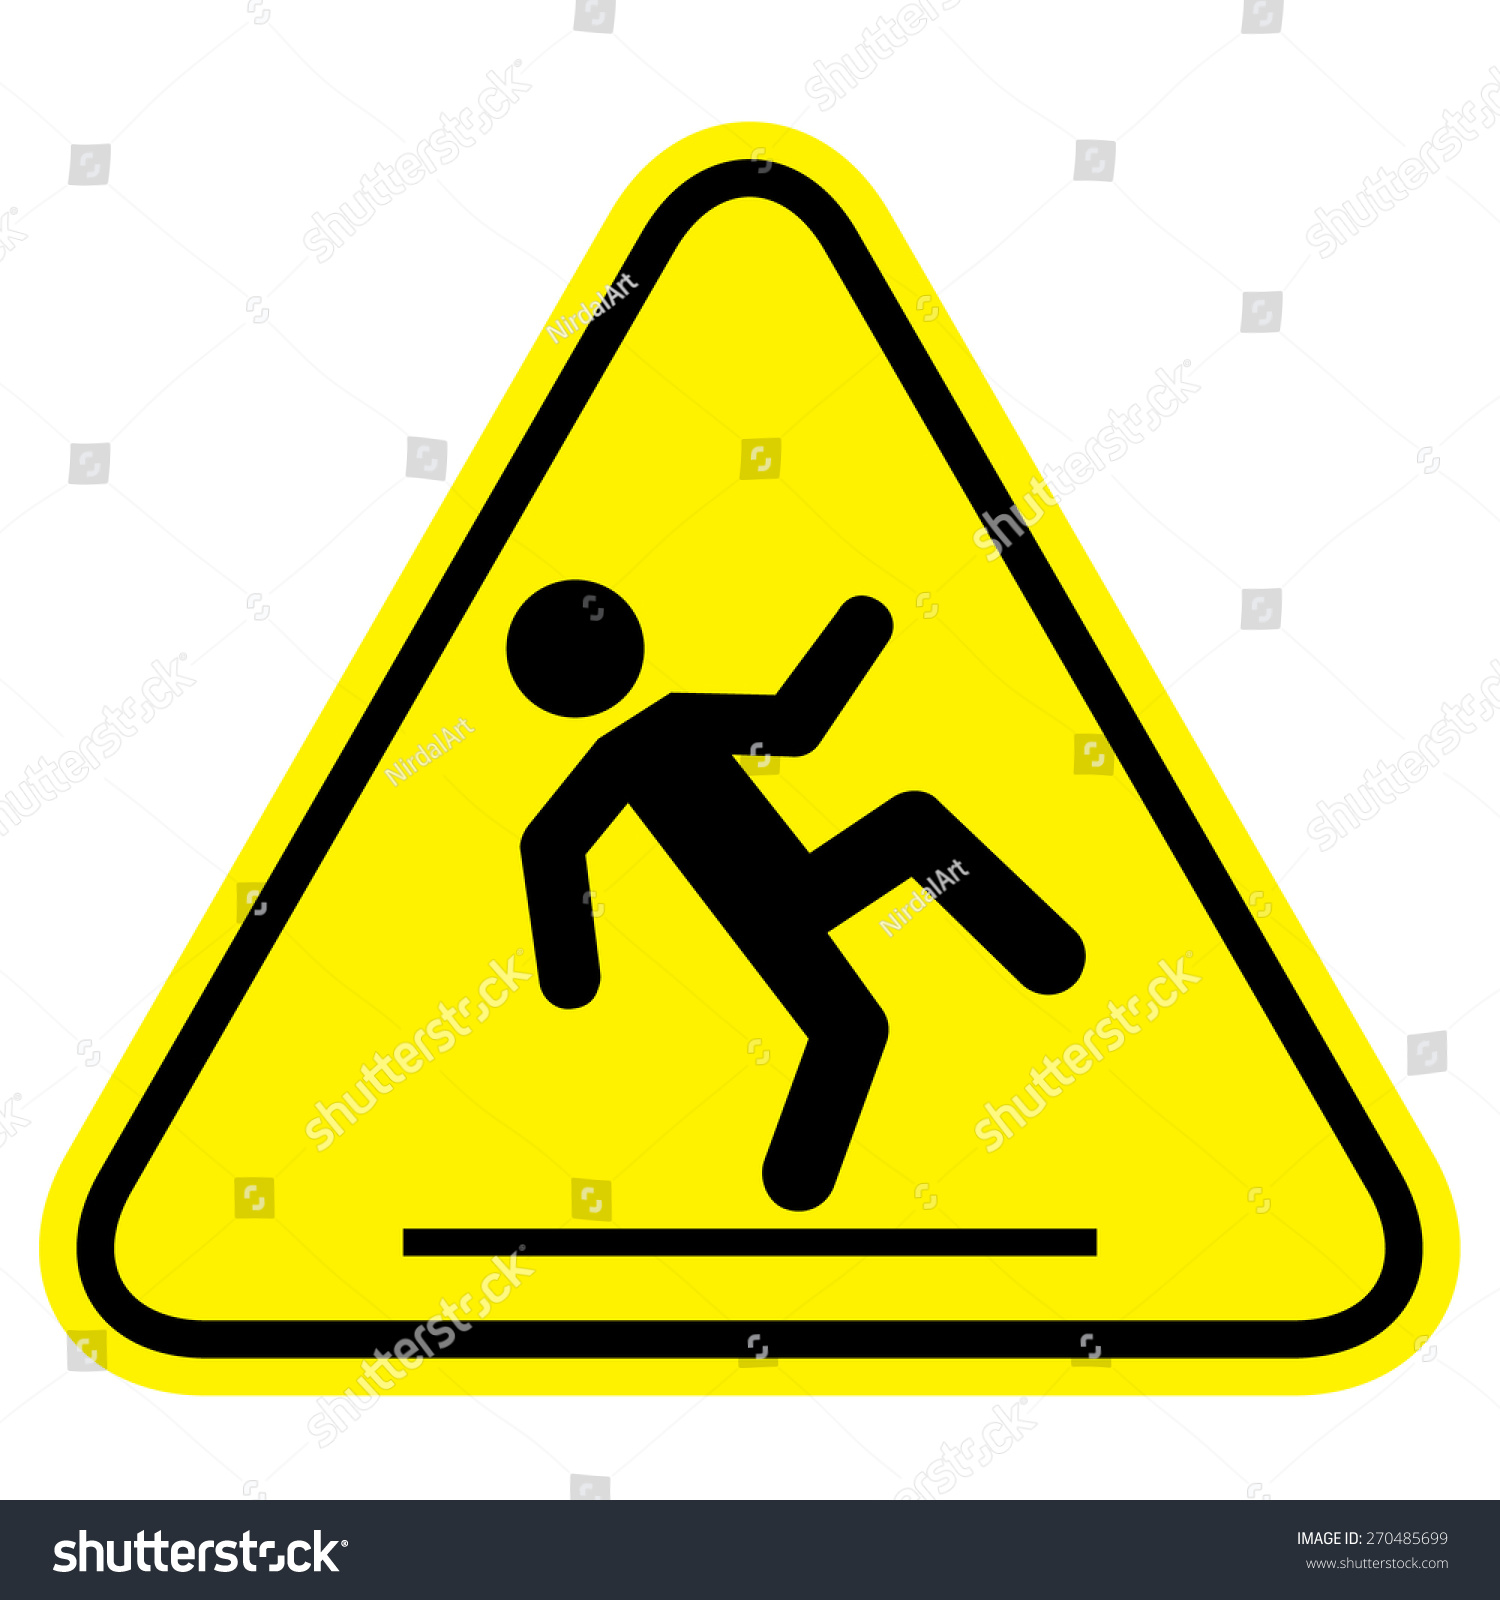 vectorstock free wet vector sign royalty floor image